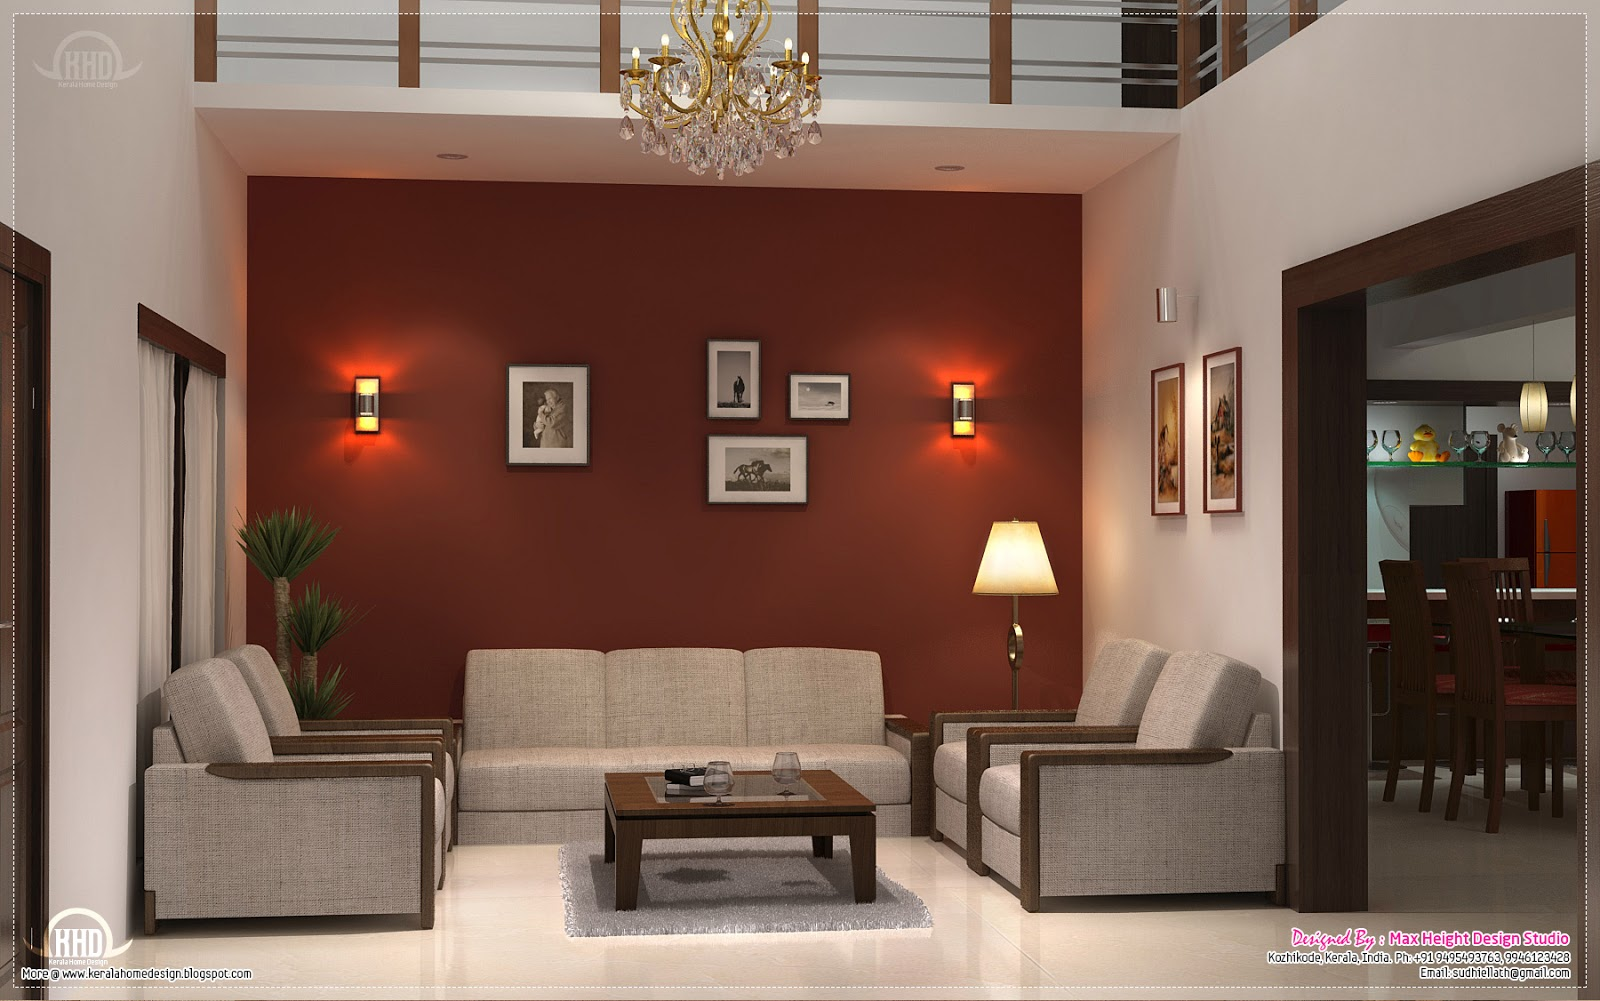 Home interior design ideas home kerala plans for Living room interior bangalore